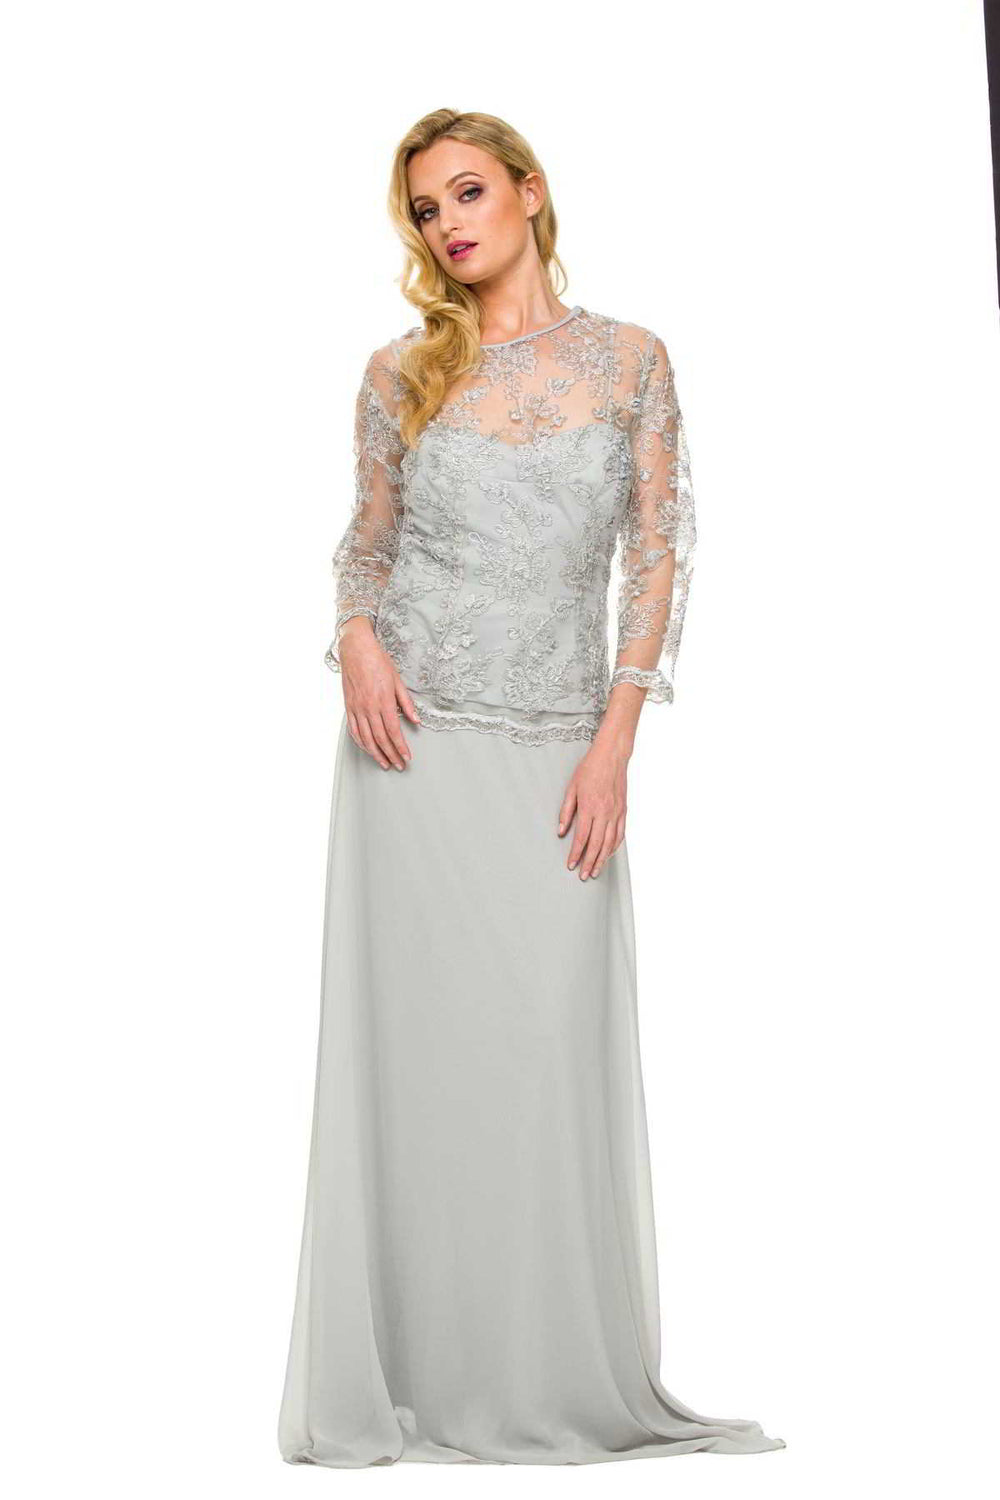 SHEER LACE JEWEL NECKLINE MOTHER OF THE BRIDE AND GROOM DRESS